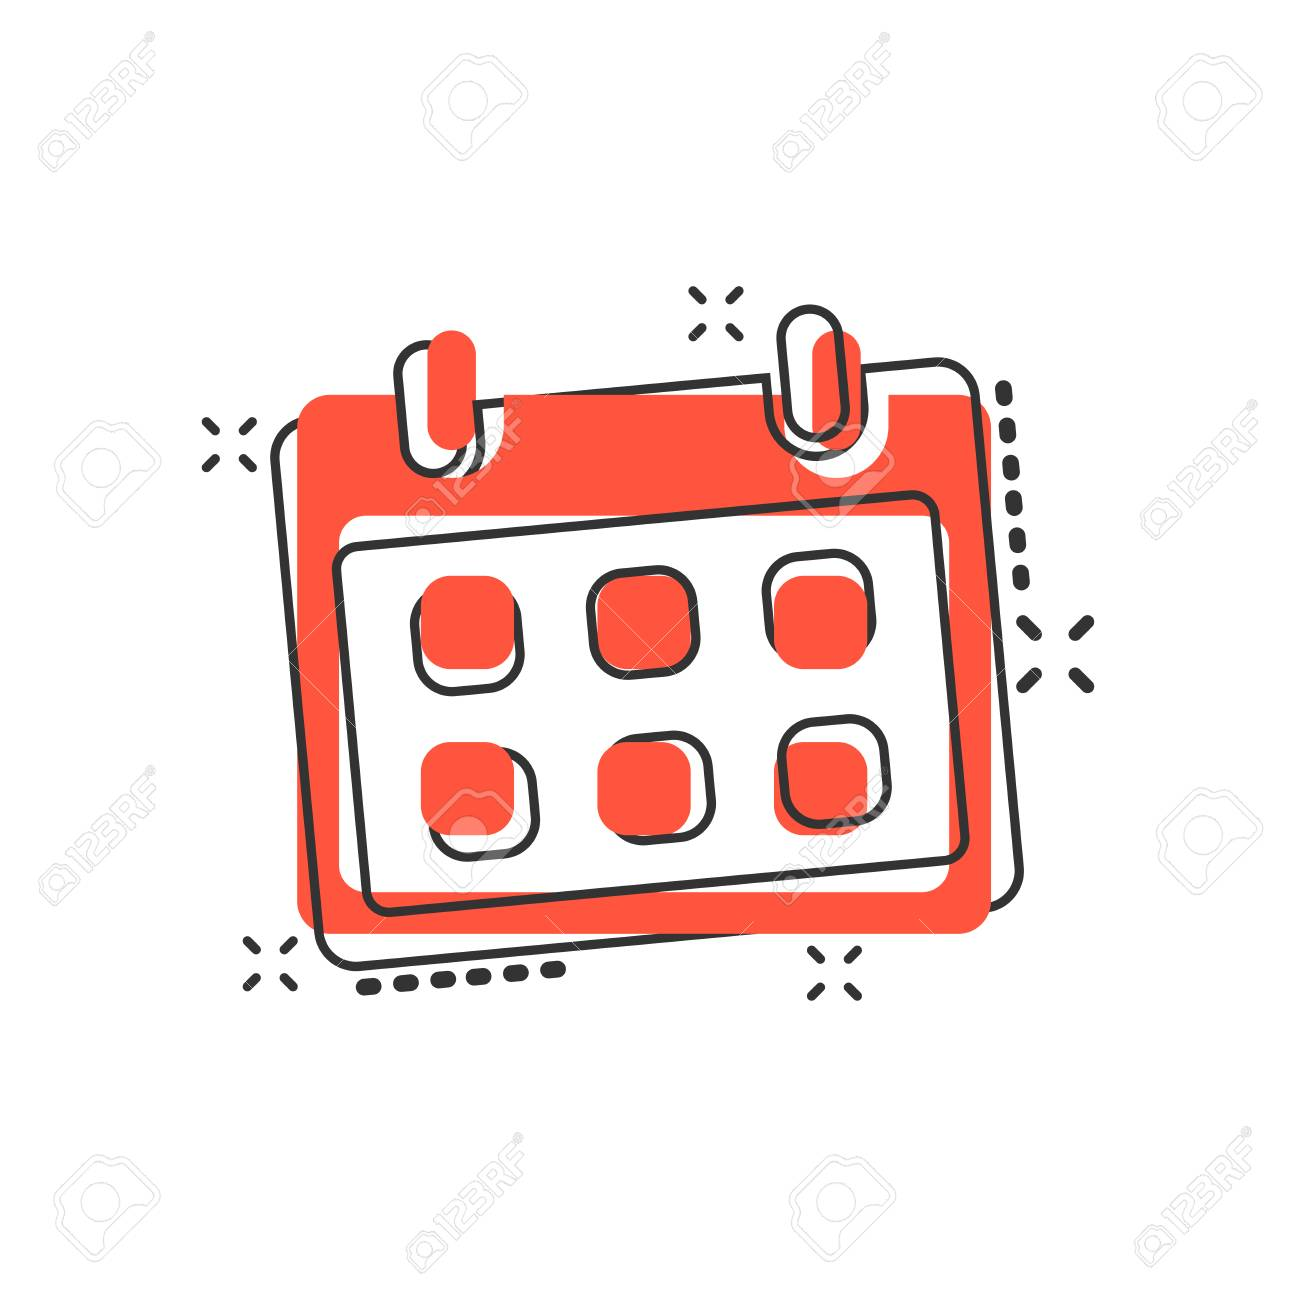 vector cartoon calendar icon in comic style reminder agenda royalty free cliparts vectors and stock illustration image 112063018 vector cartoon calendar icon in comic style reminder agenda